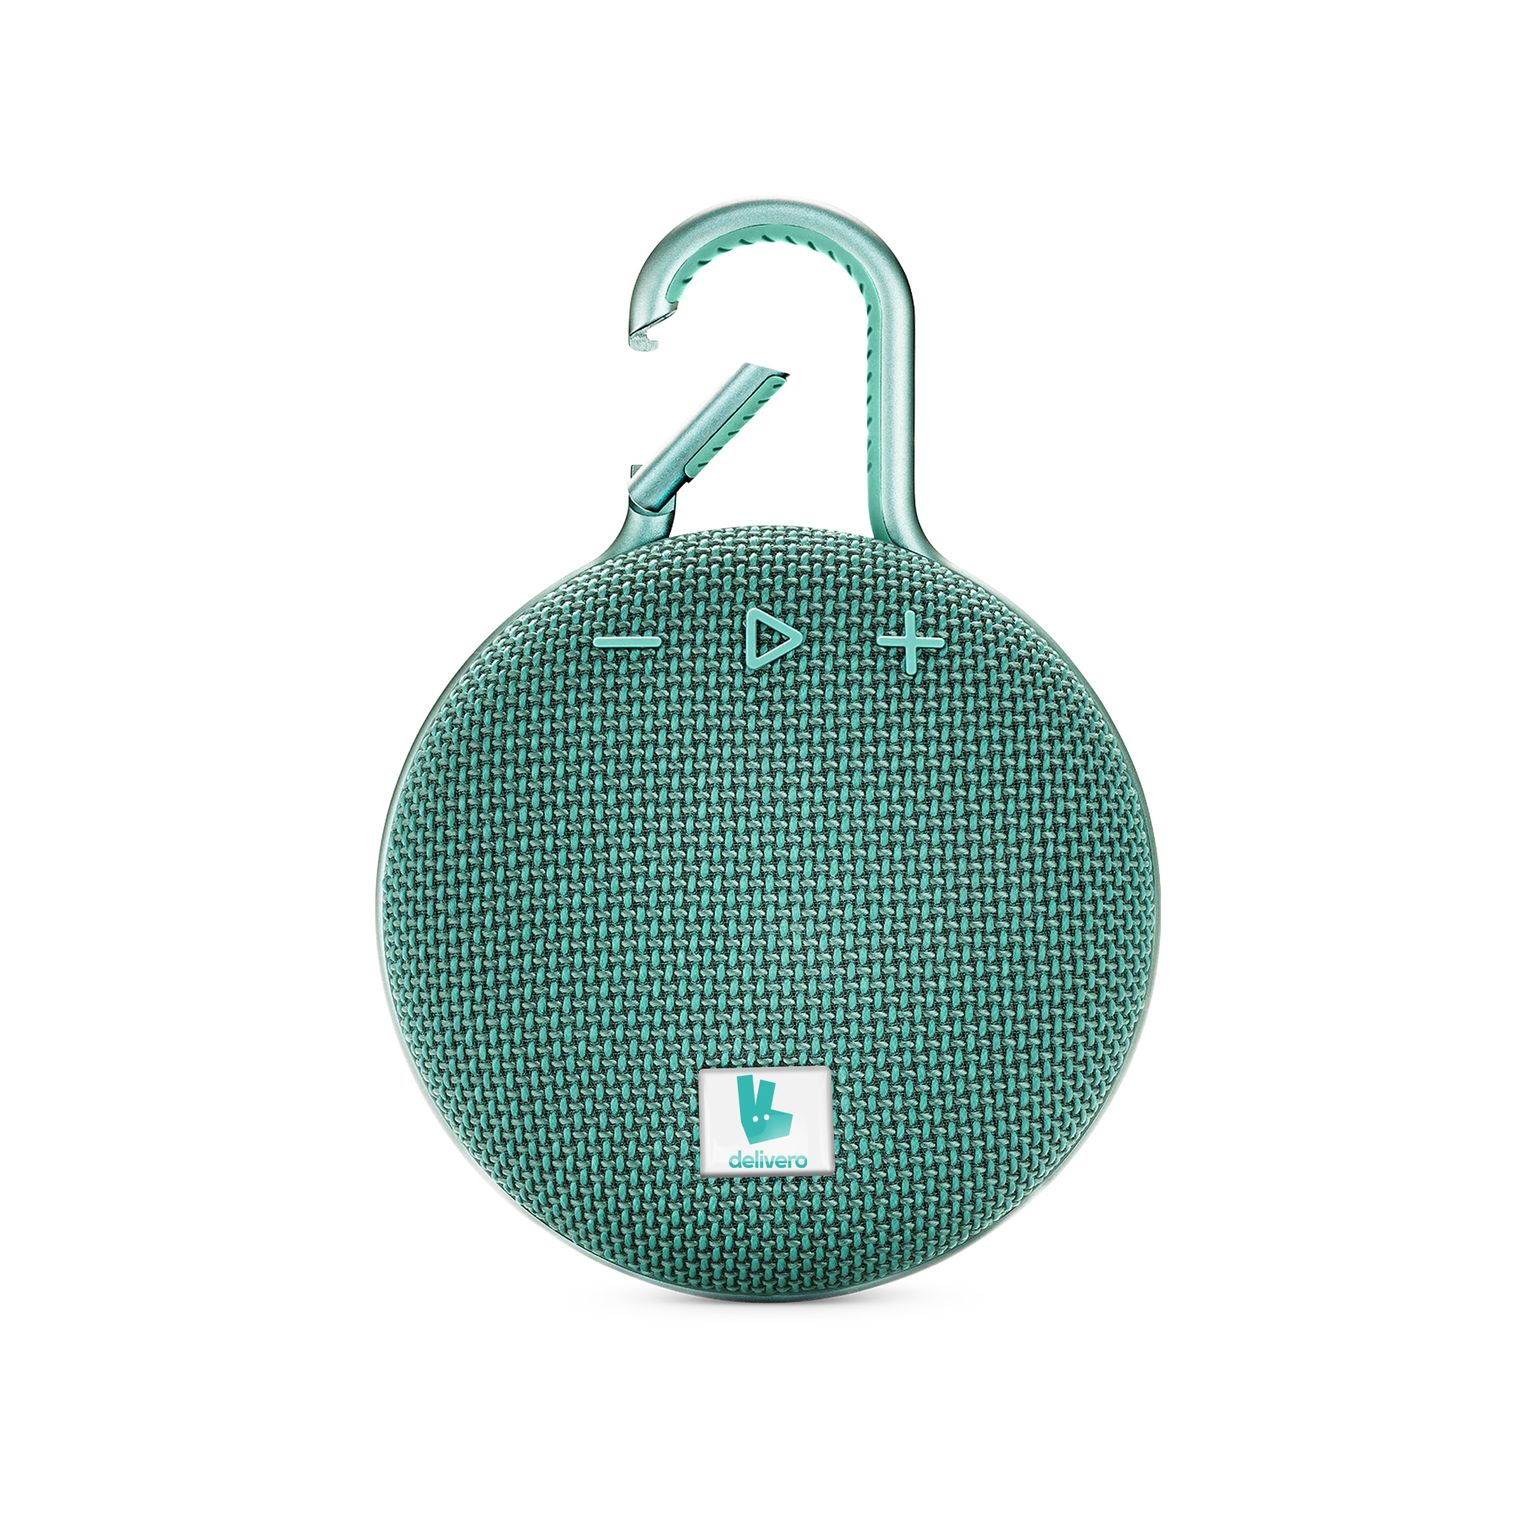 JBL Clip 3 Personalized River Teal with doming in full color